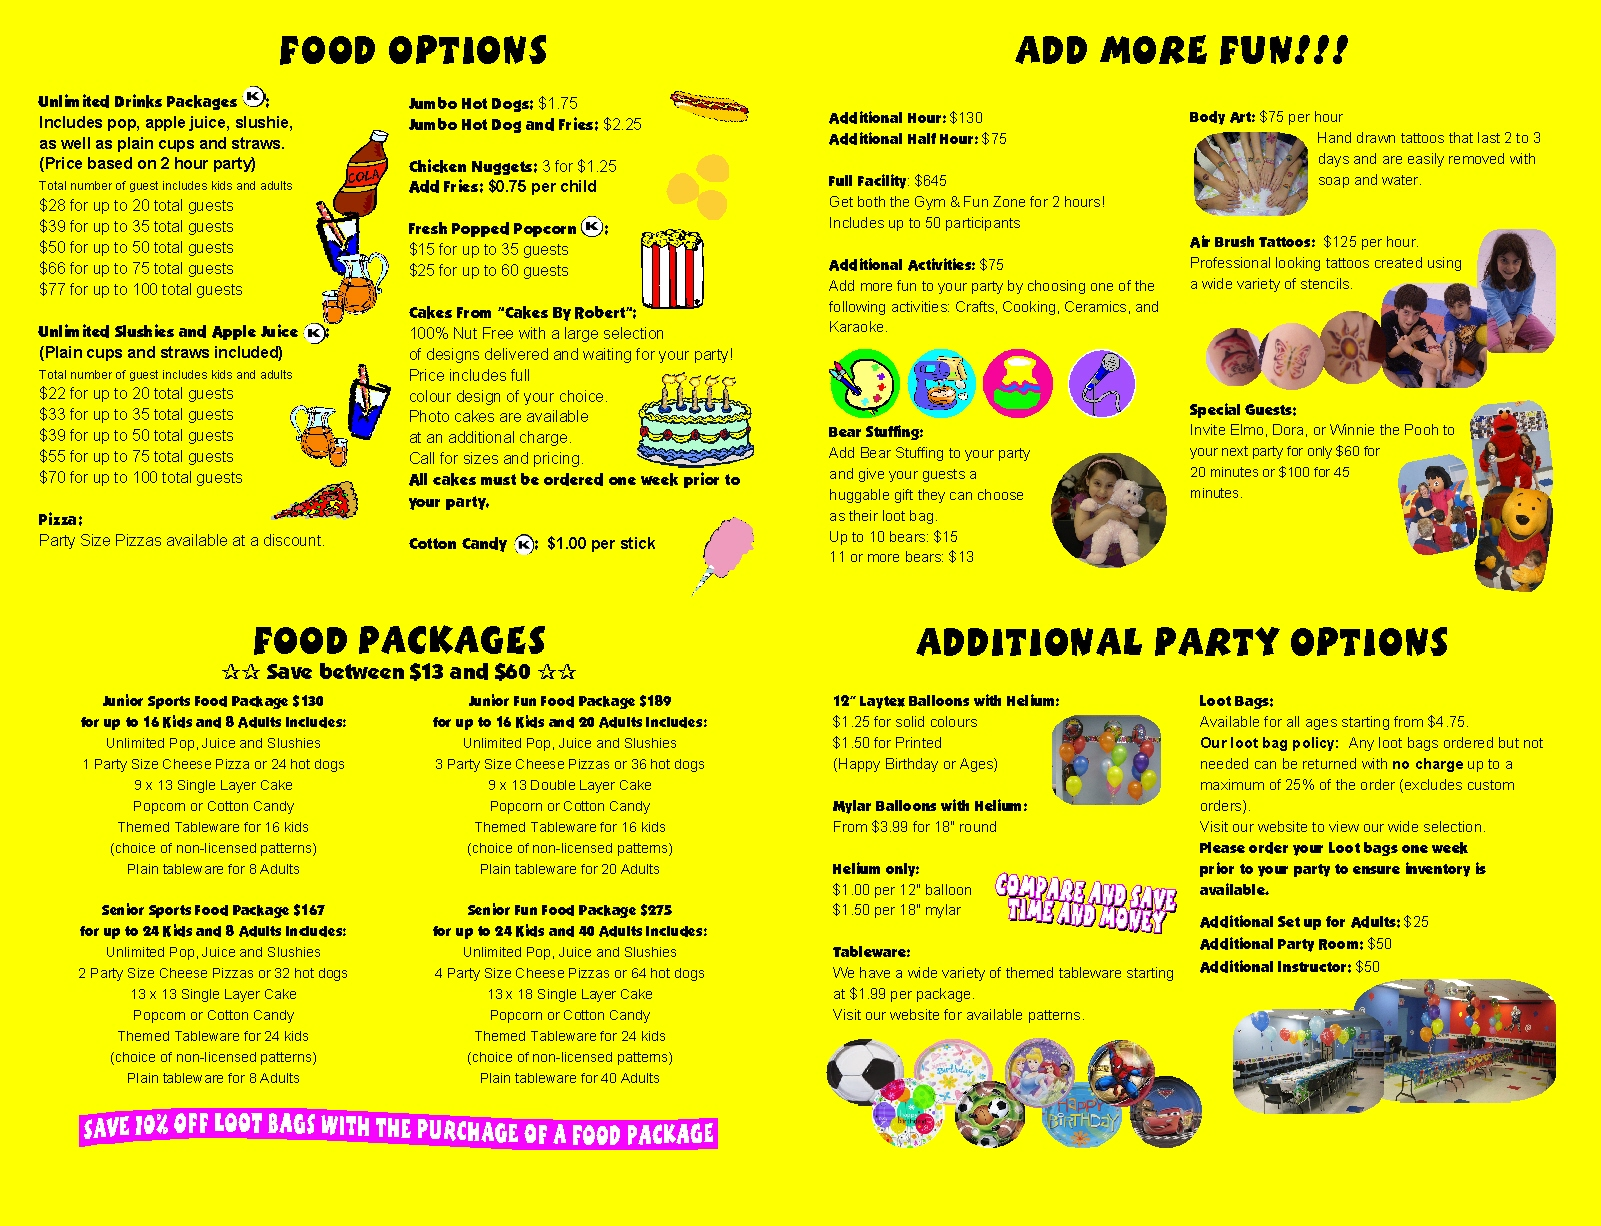 Please select from the list of Lootbags and Tableware below for more information.  sc 1 st  Active Kids Zone & Loot Bags \u0026 Tableware - Active Kids Zone Inc.